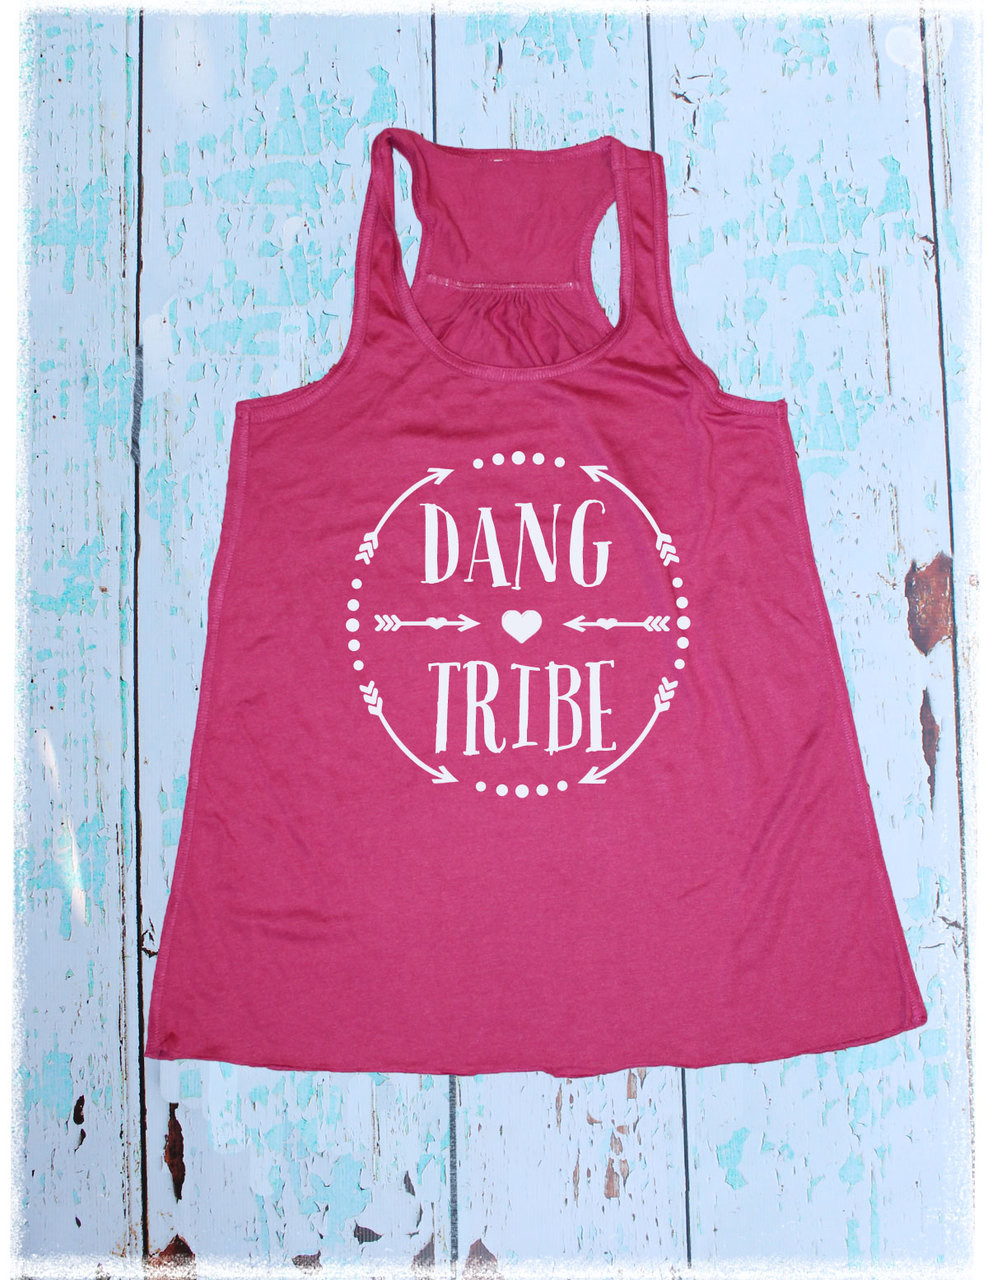 Dang Tribe berry tank top by Dang Chicks